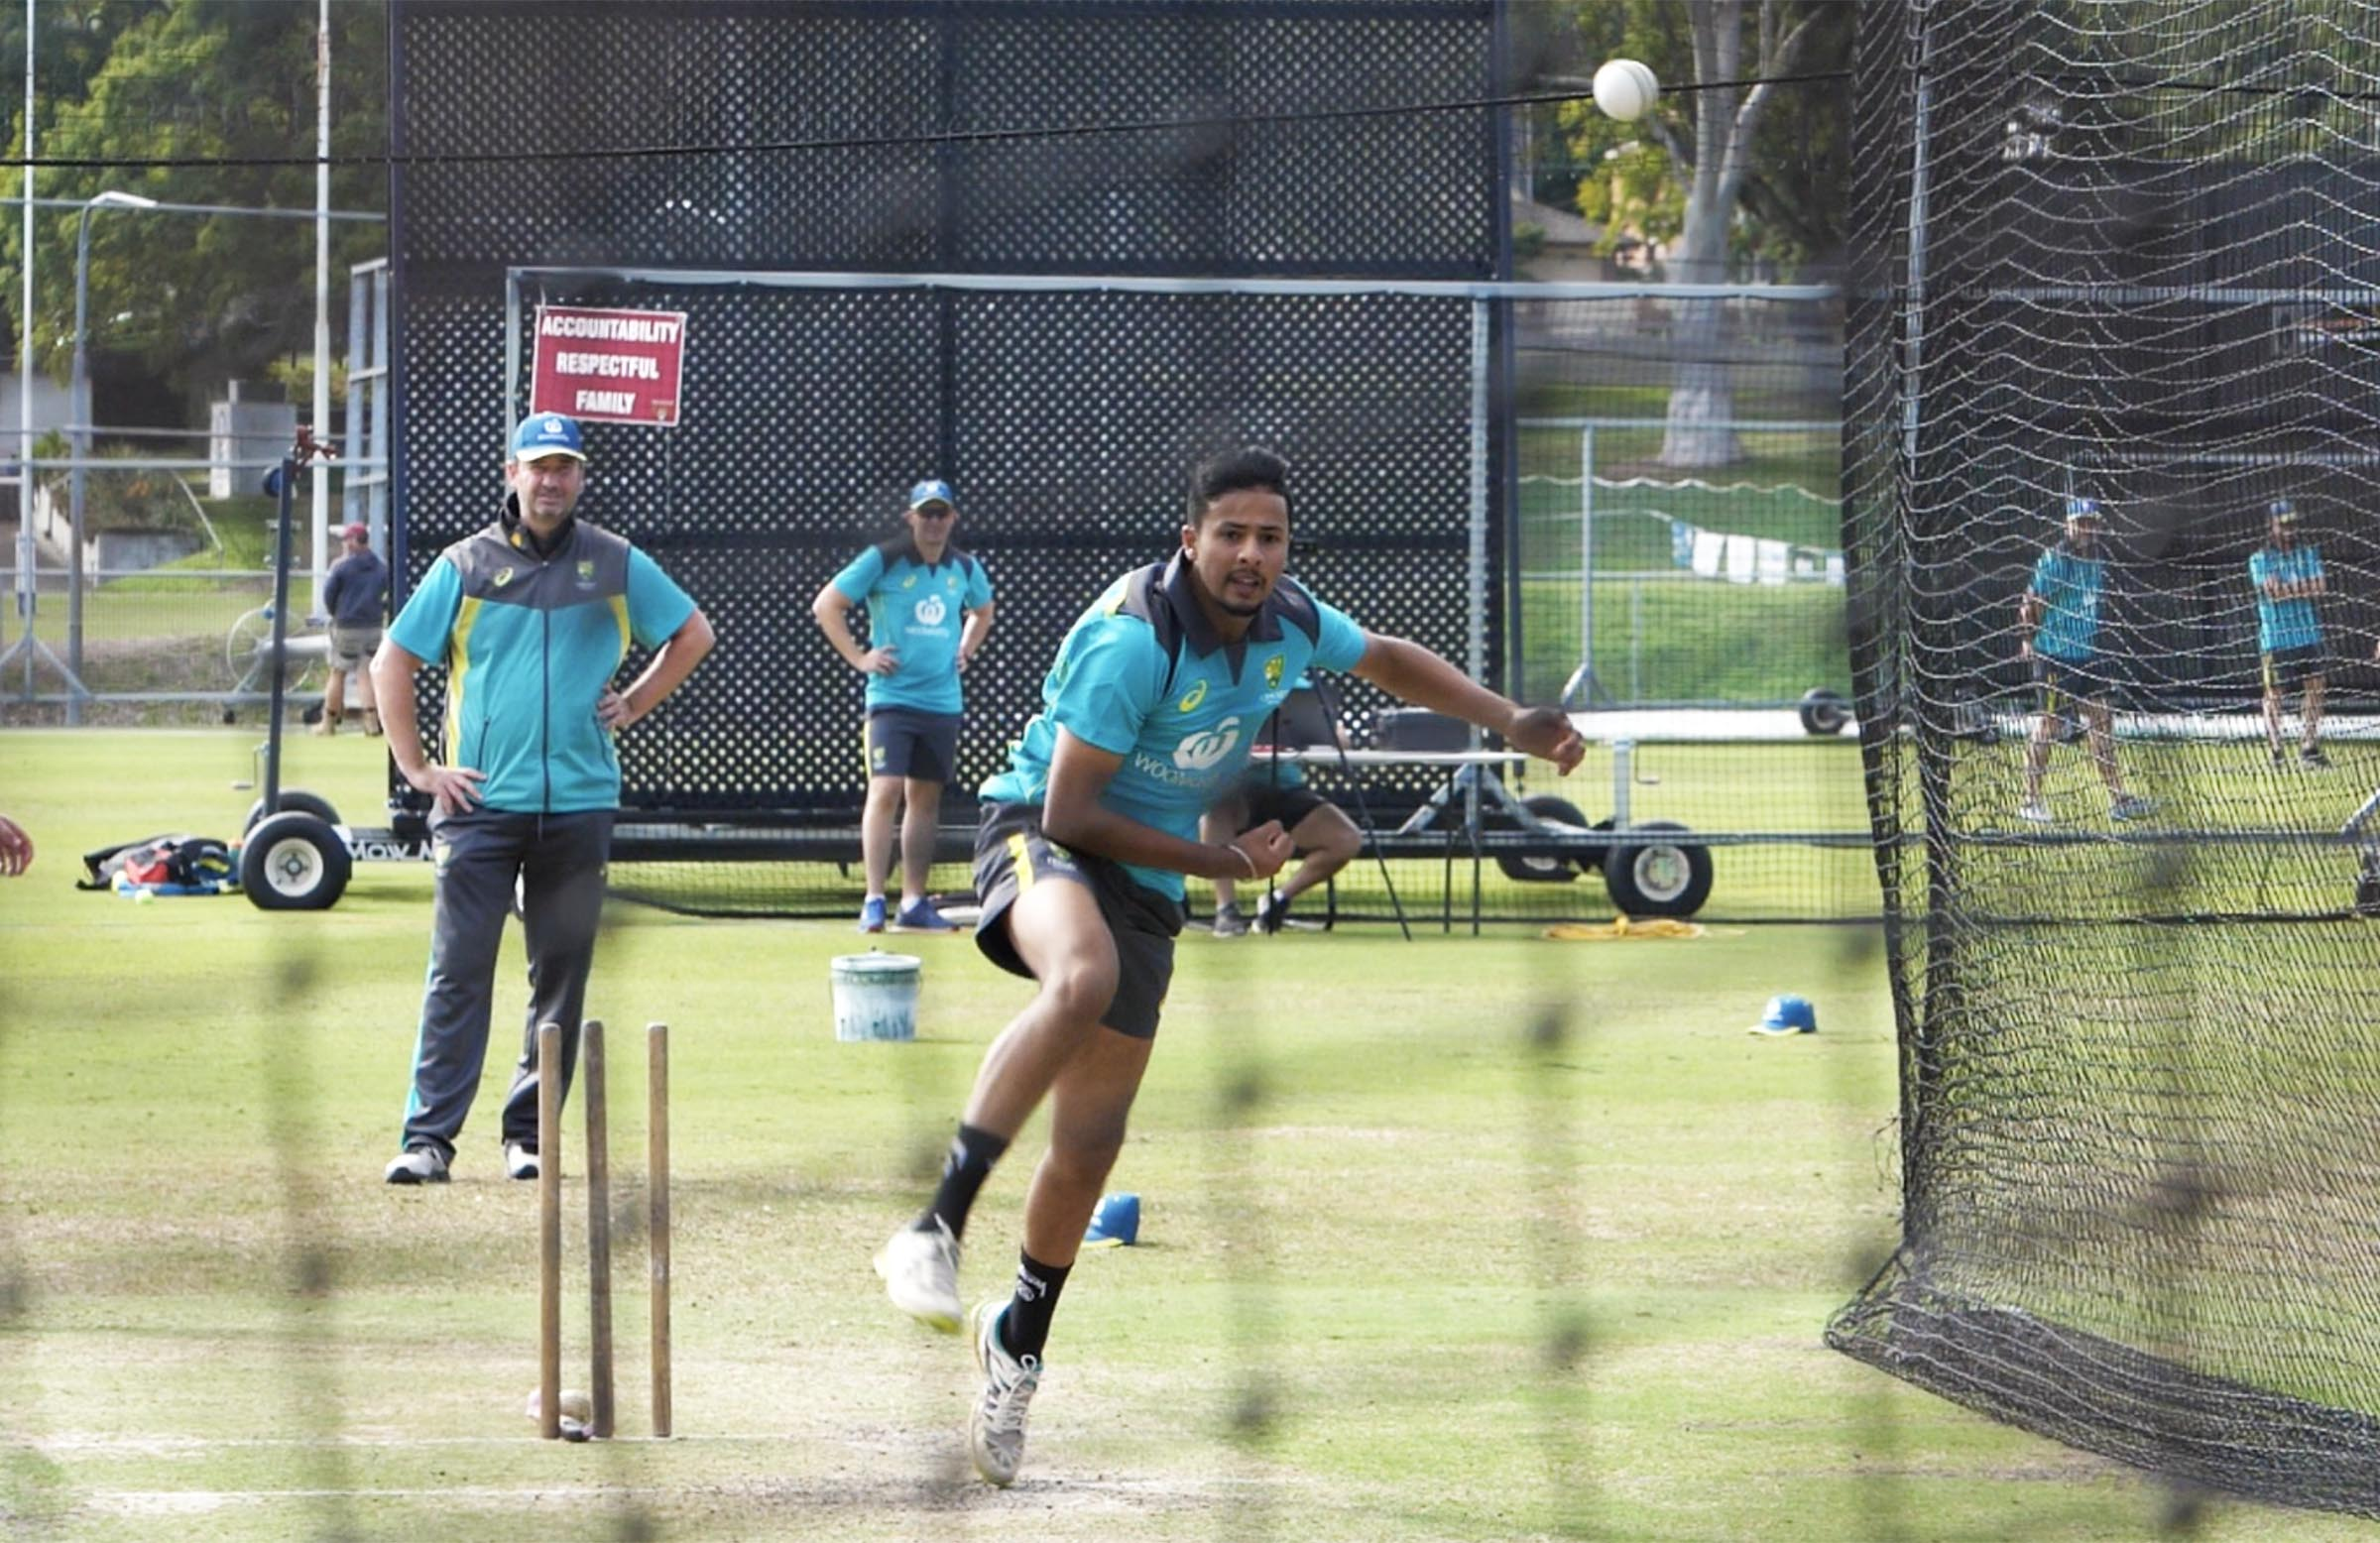 Tanveer rips another leg break at the NCC // cricket.com.au